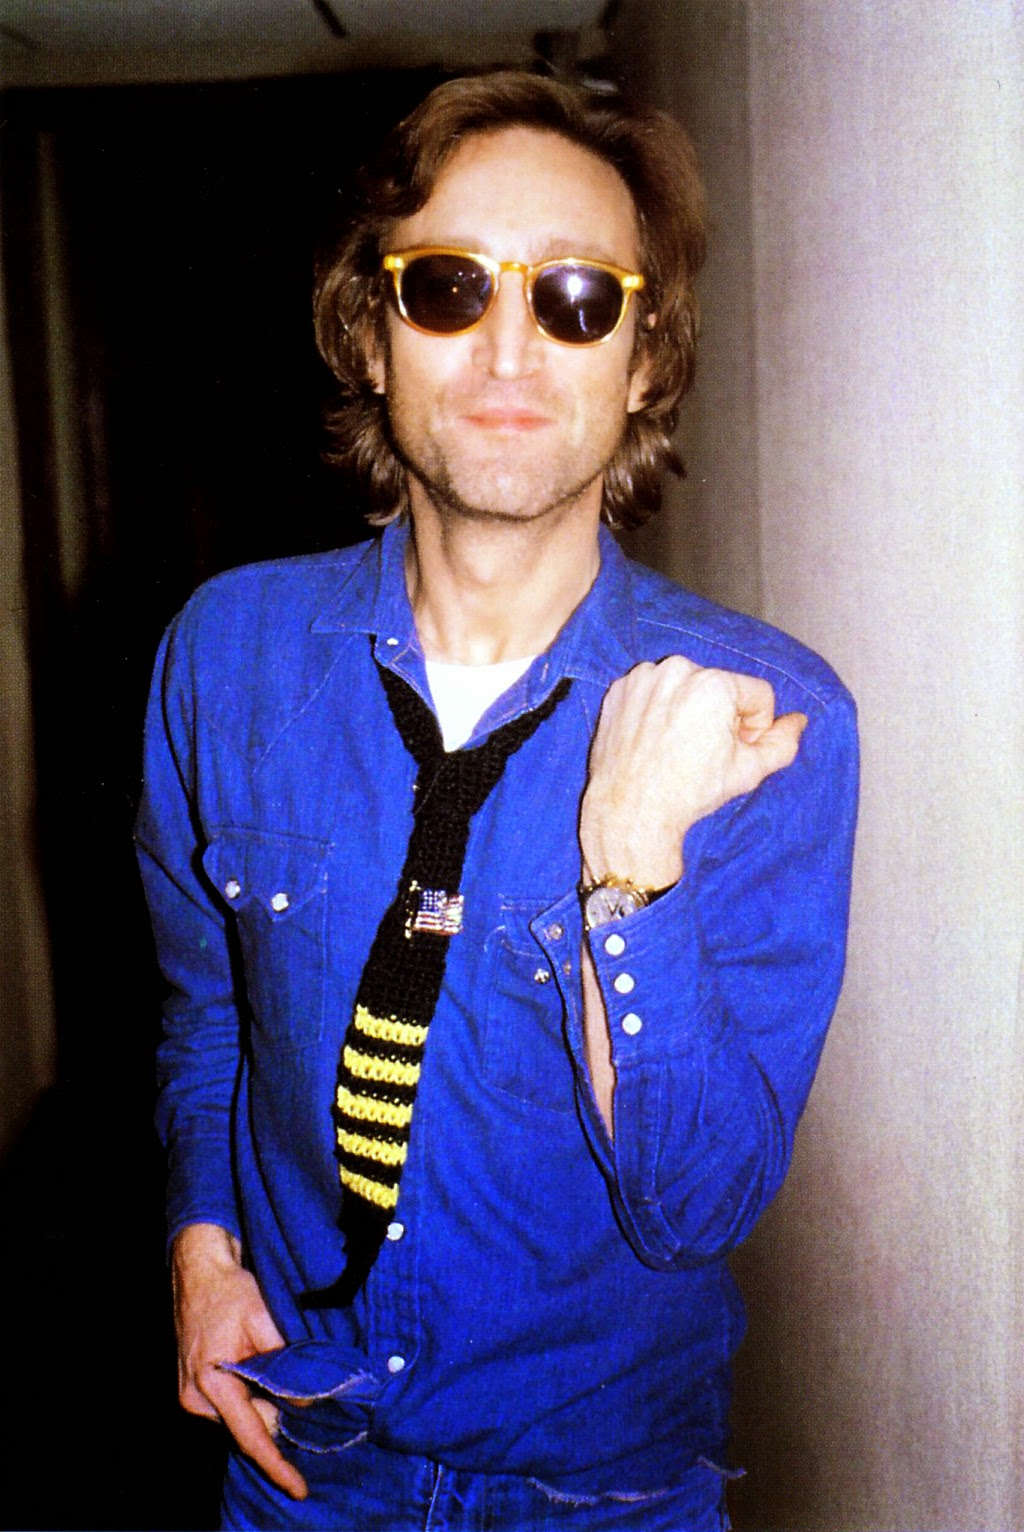 These Candid Snapshots of John Lennon on the Streets Taken ...